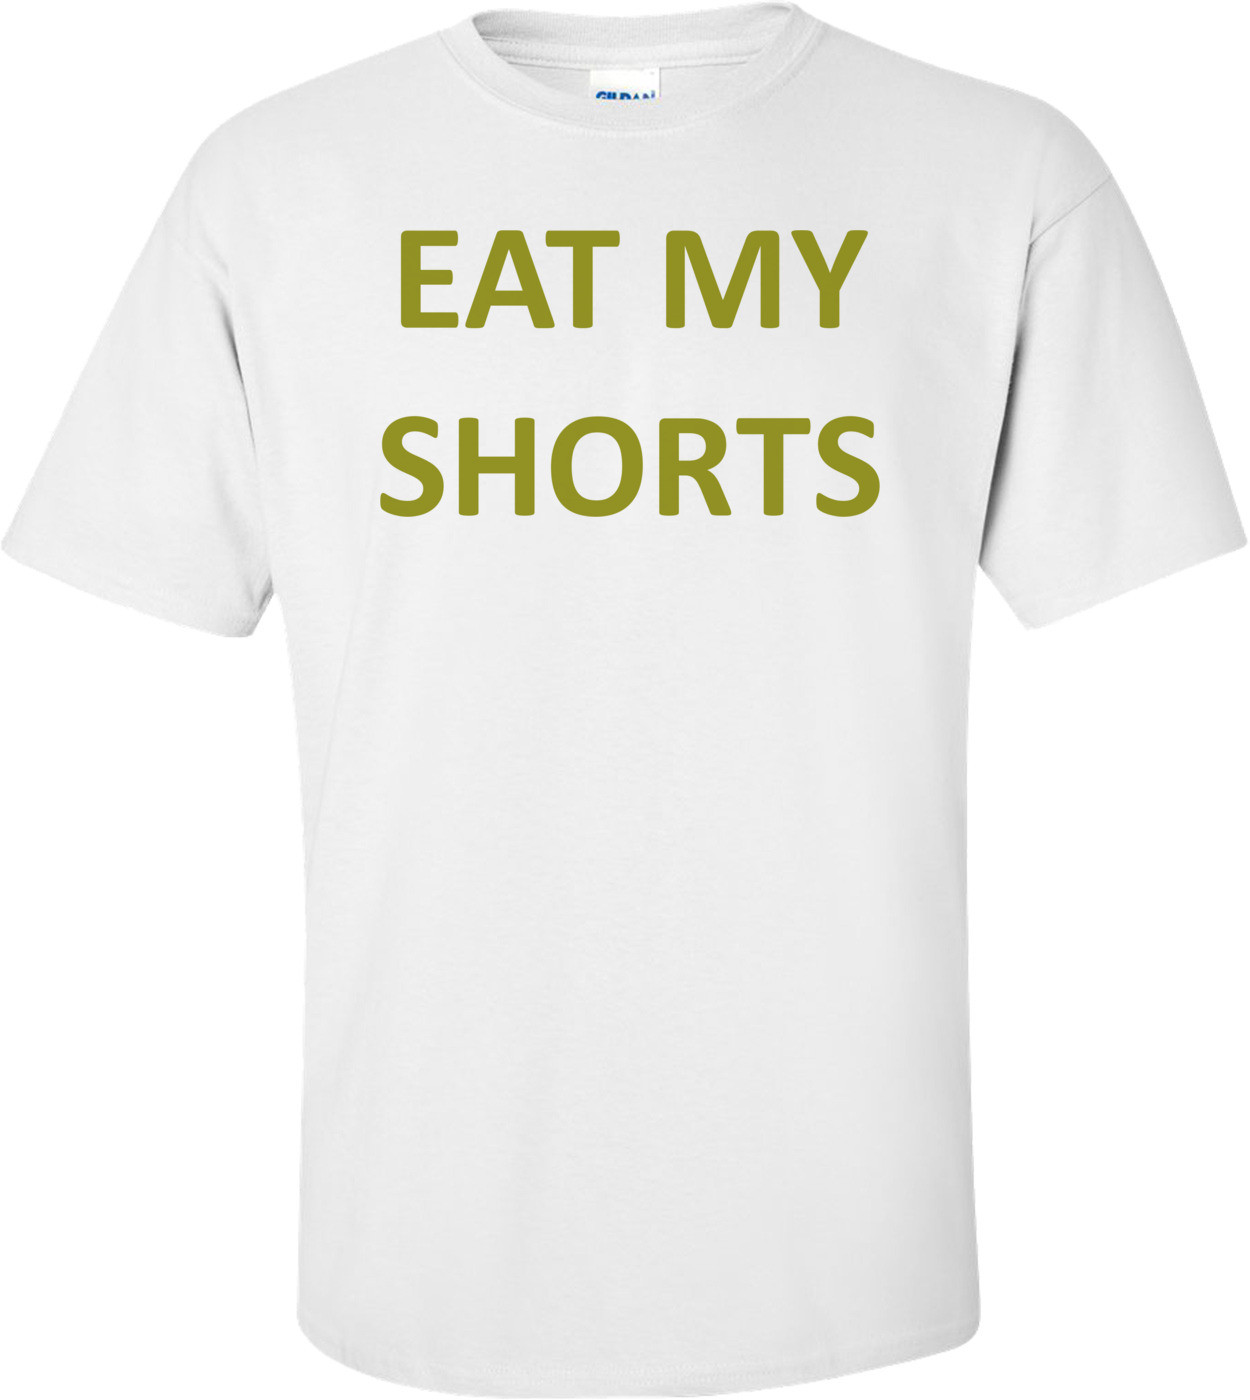 EAT MY SHORTS Shirt